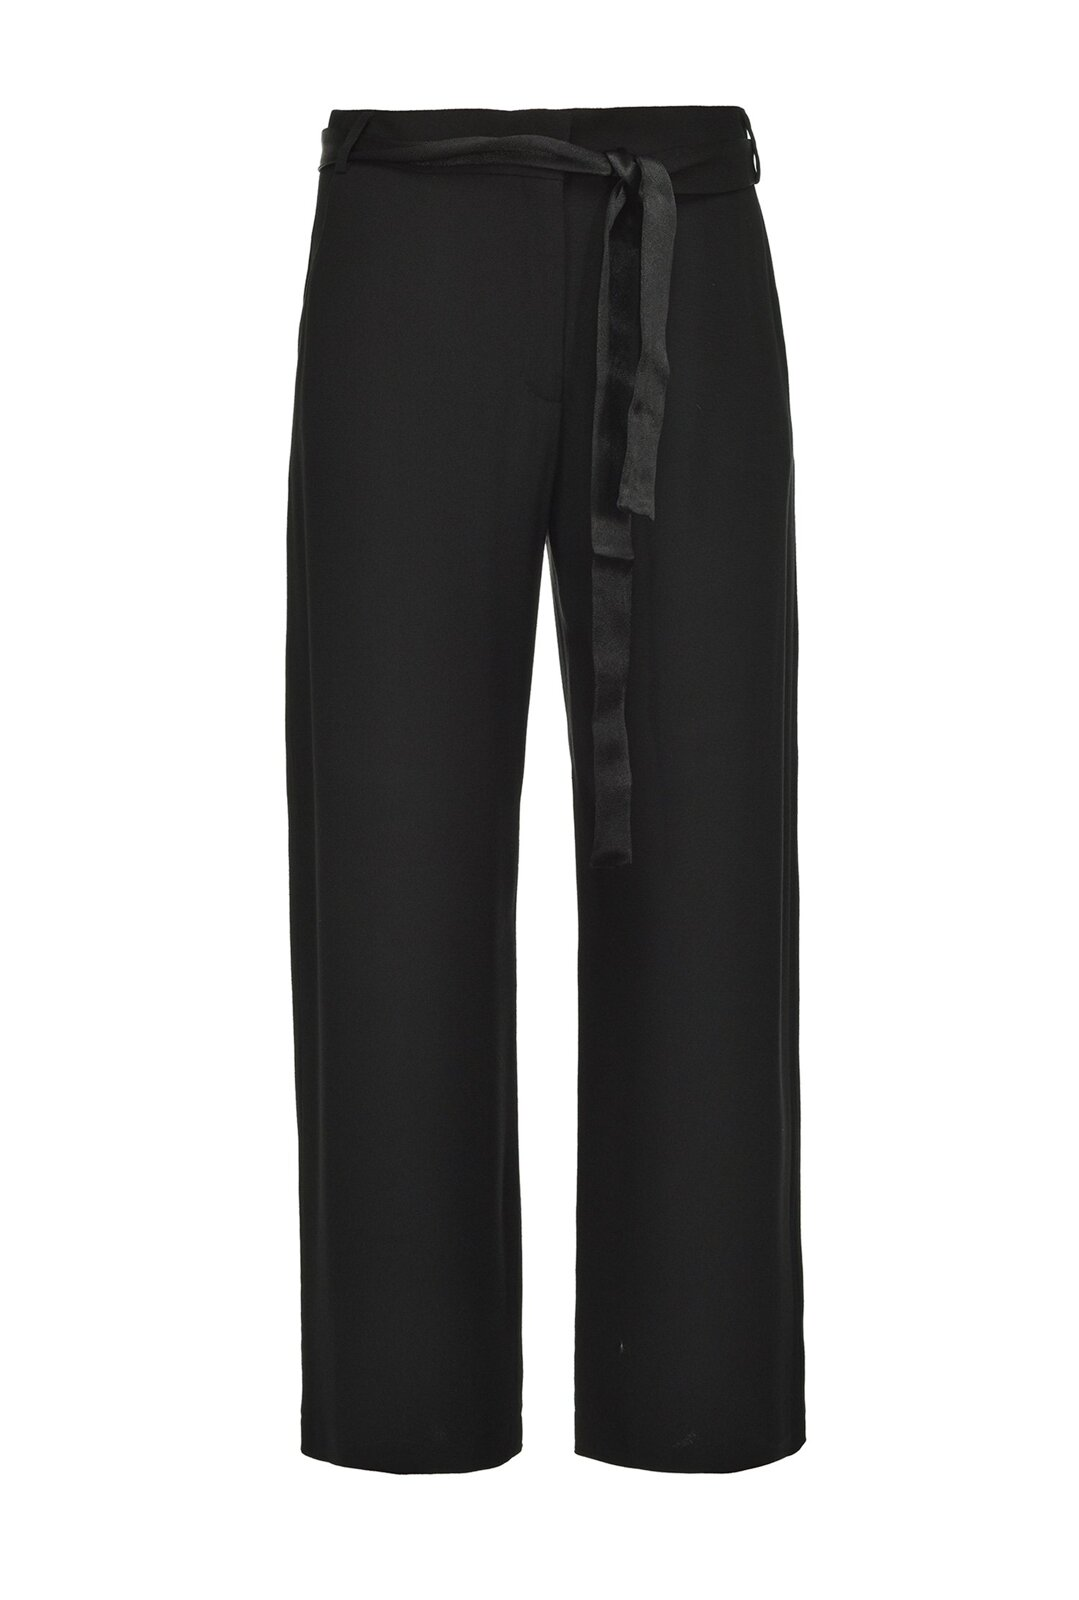 Pantaloni Cropped In Enver Satin - Pinko